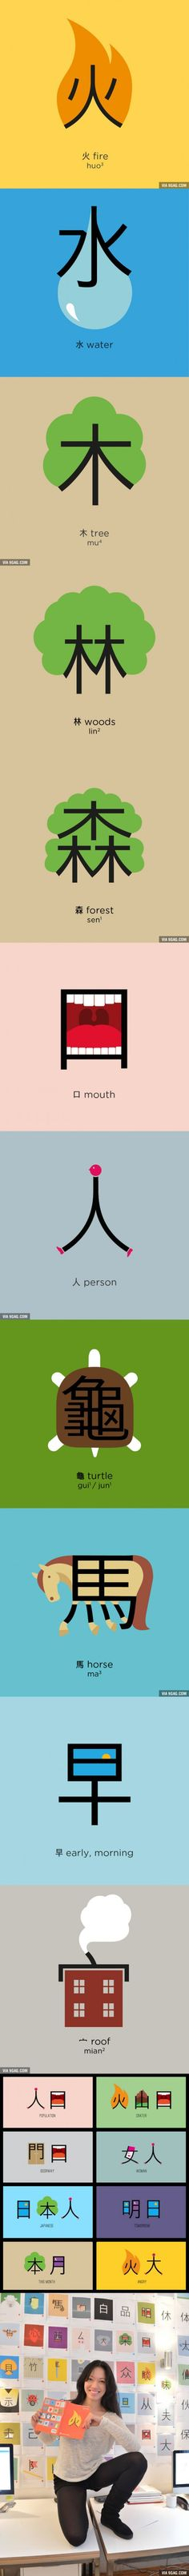 Playful Illustrations Make It Easy to Learn Chinese. By ShaoLan Hsueh.